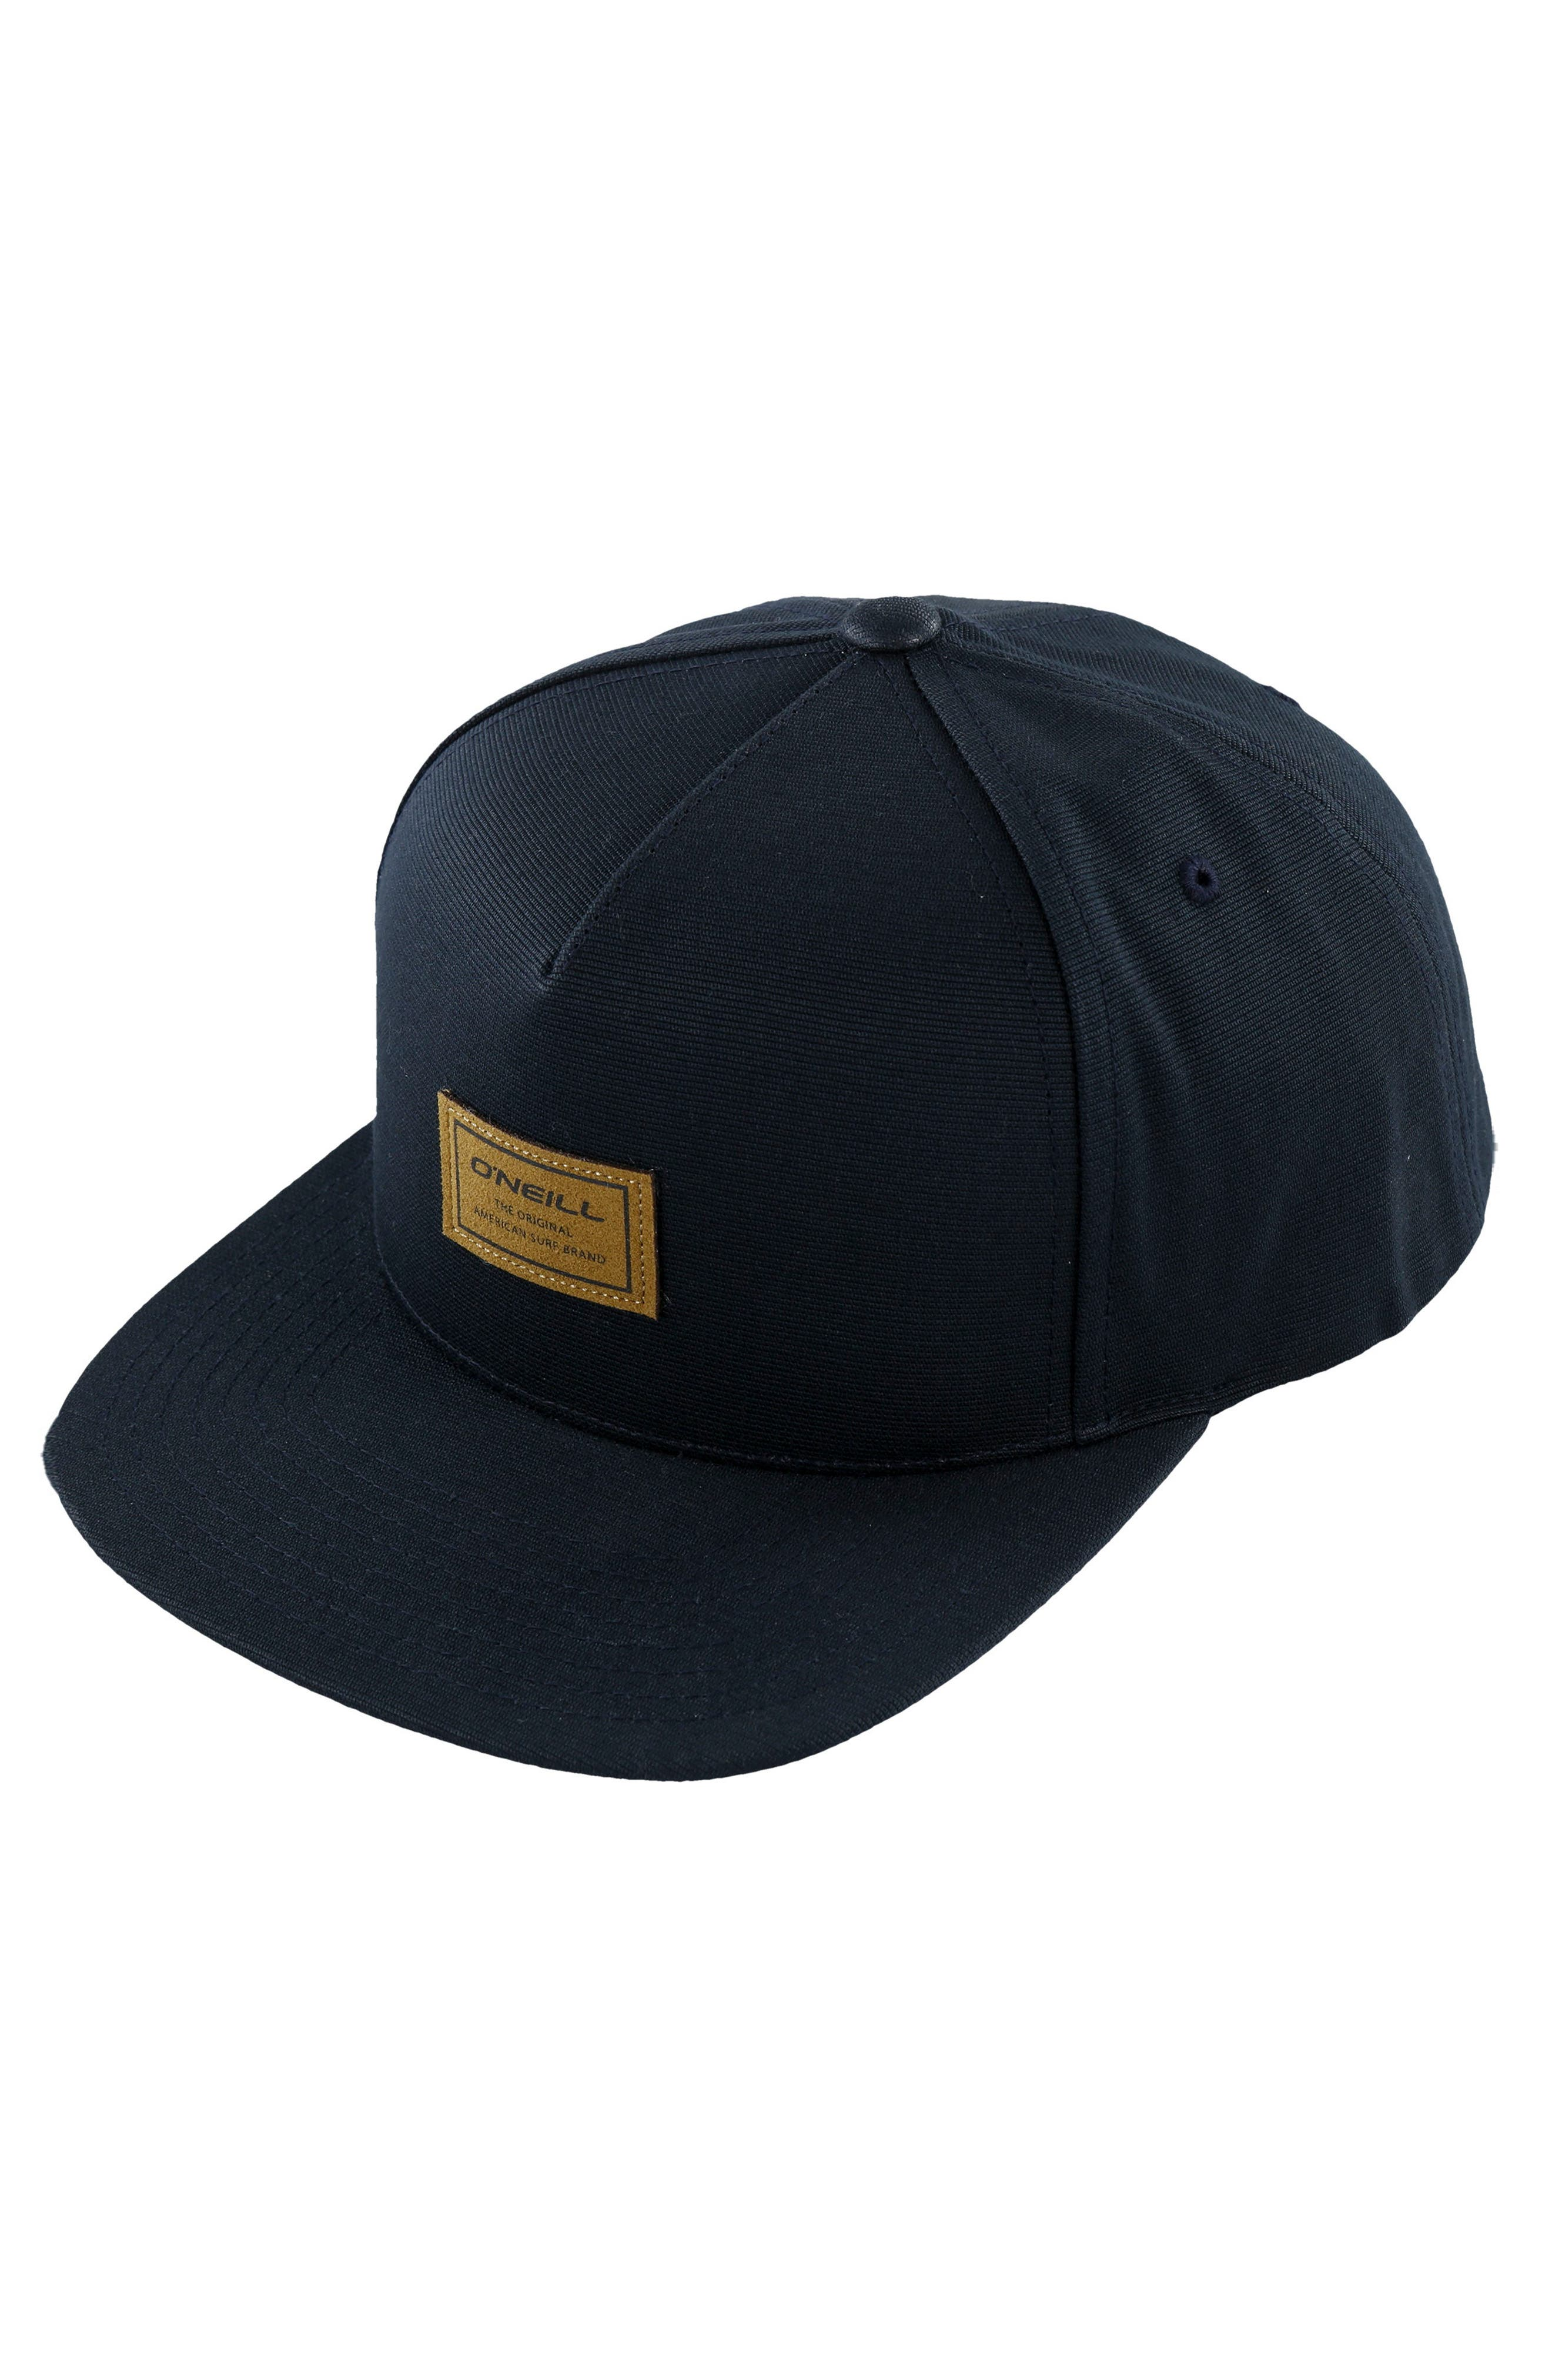 Alternate Image 1 Selected - O'Neill Bondai Snapback Cap